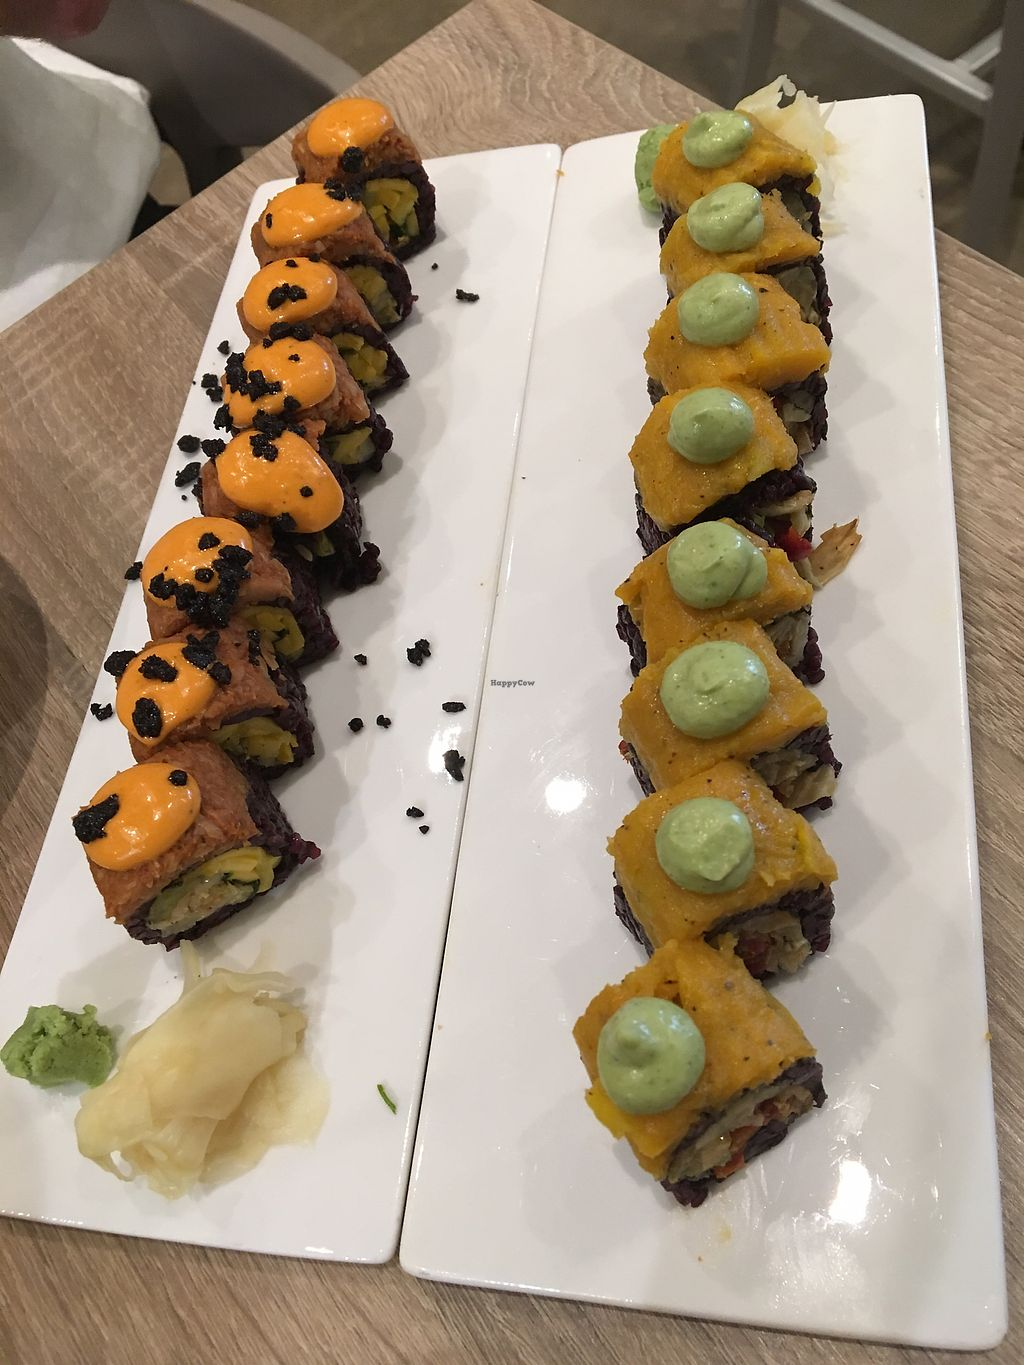 "Photo of Beyond Sushi - Herald Square  by <a href=""/members/profile/JJones315"">JJones315</a> <br/>Sushi Rolls <br/> August 1, 2017  - <a href='/contact/abuse/image/92497/287751'>Report</a>"